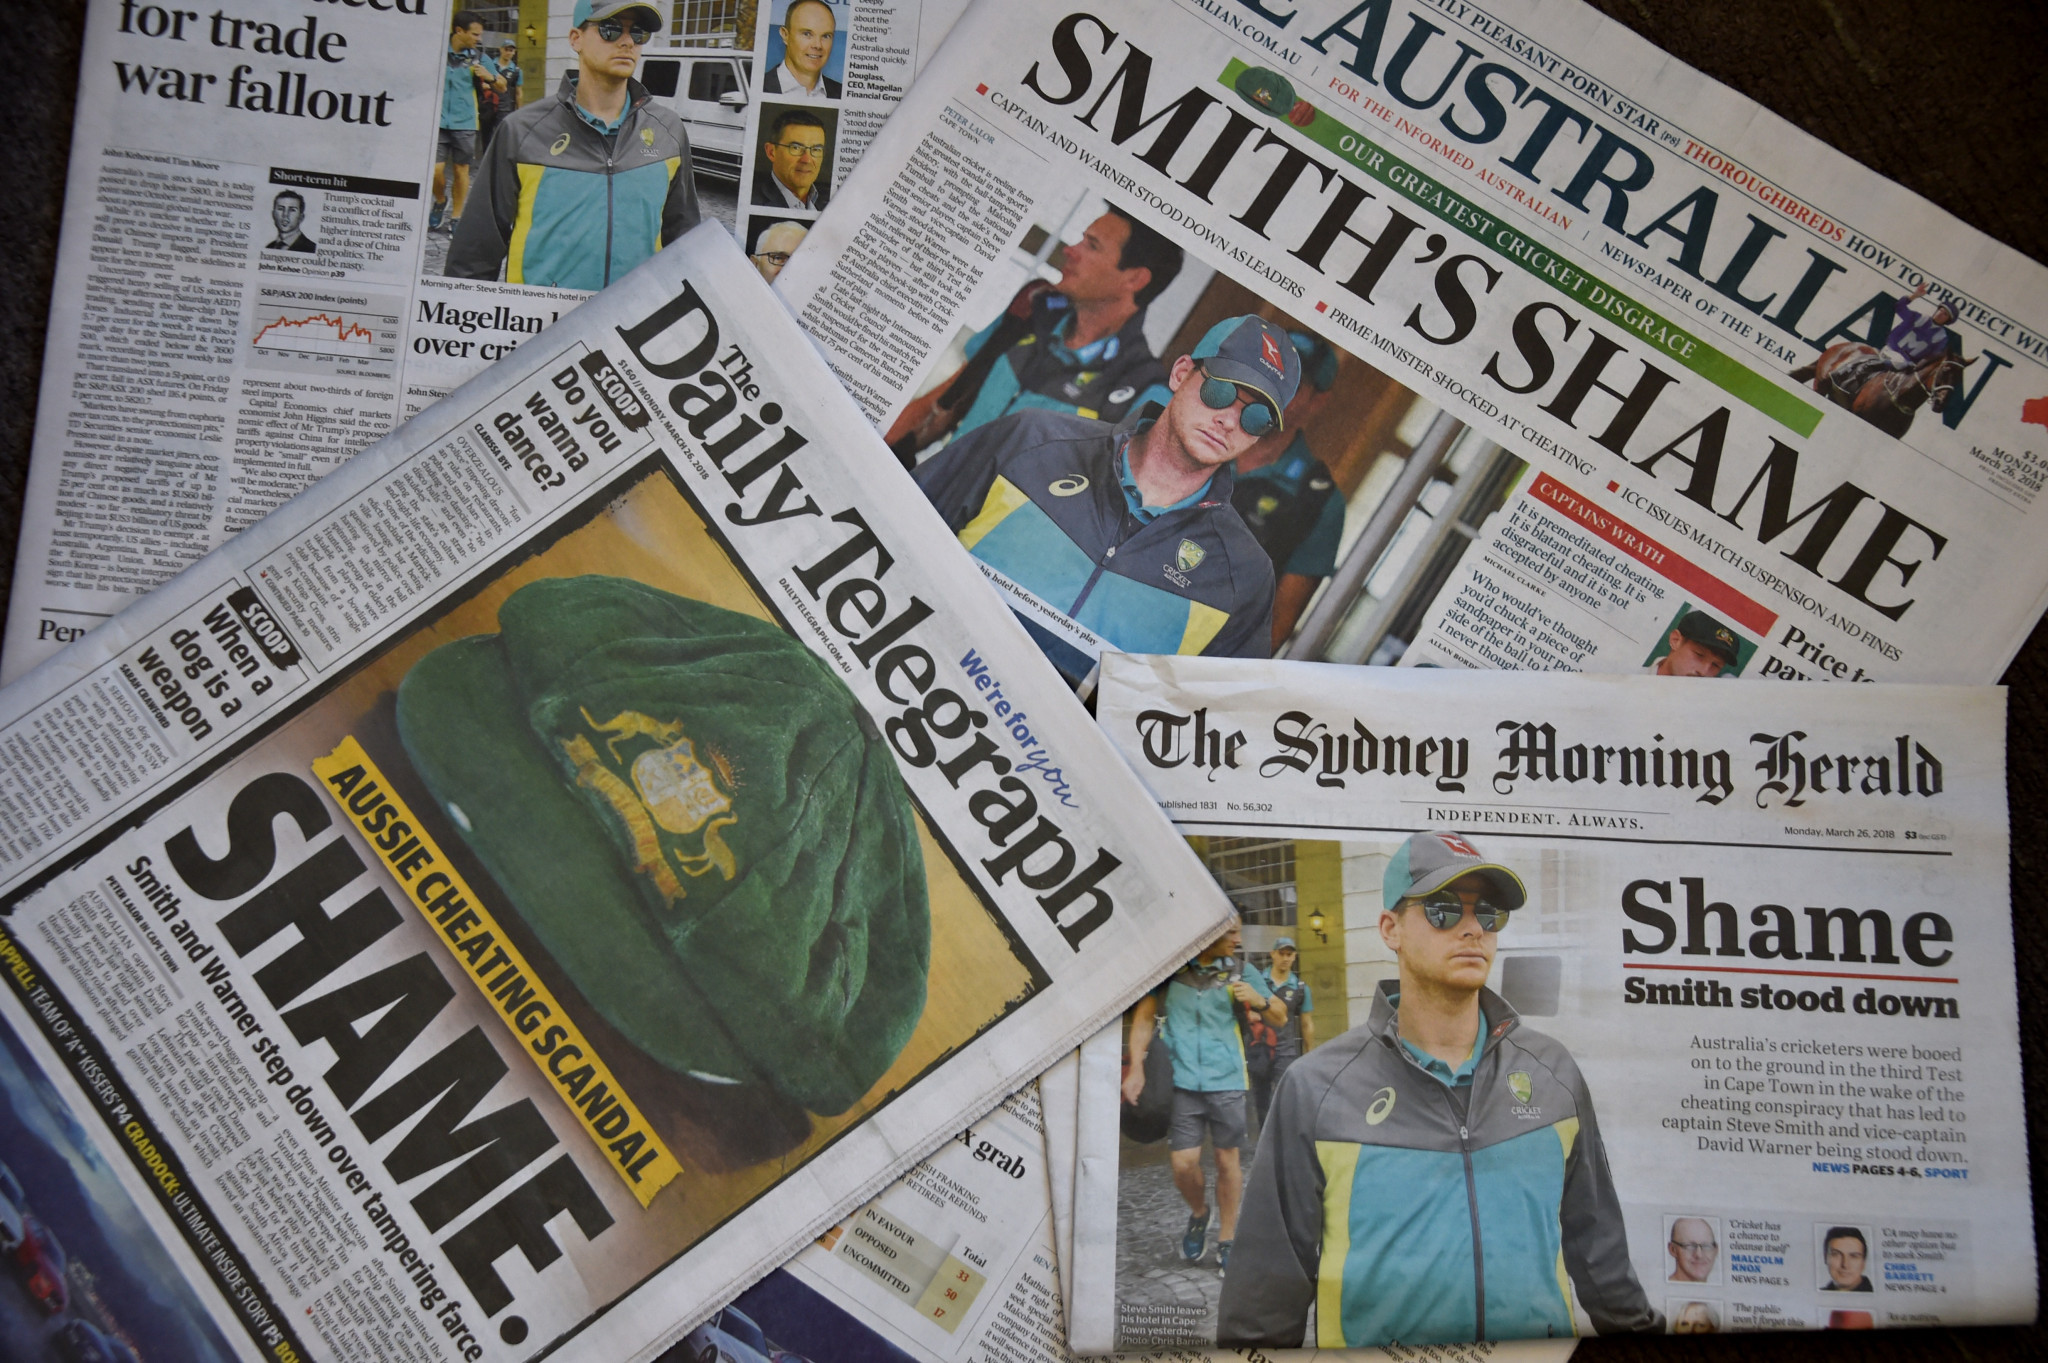 Australian media coverage slammed cricket captain Steve Smith after he admitted culpability in ball tampering ©Getty Images